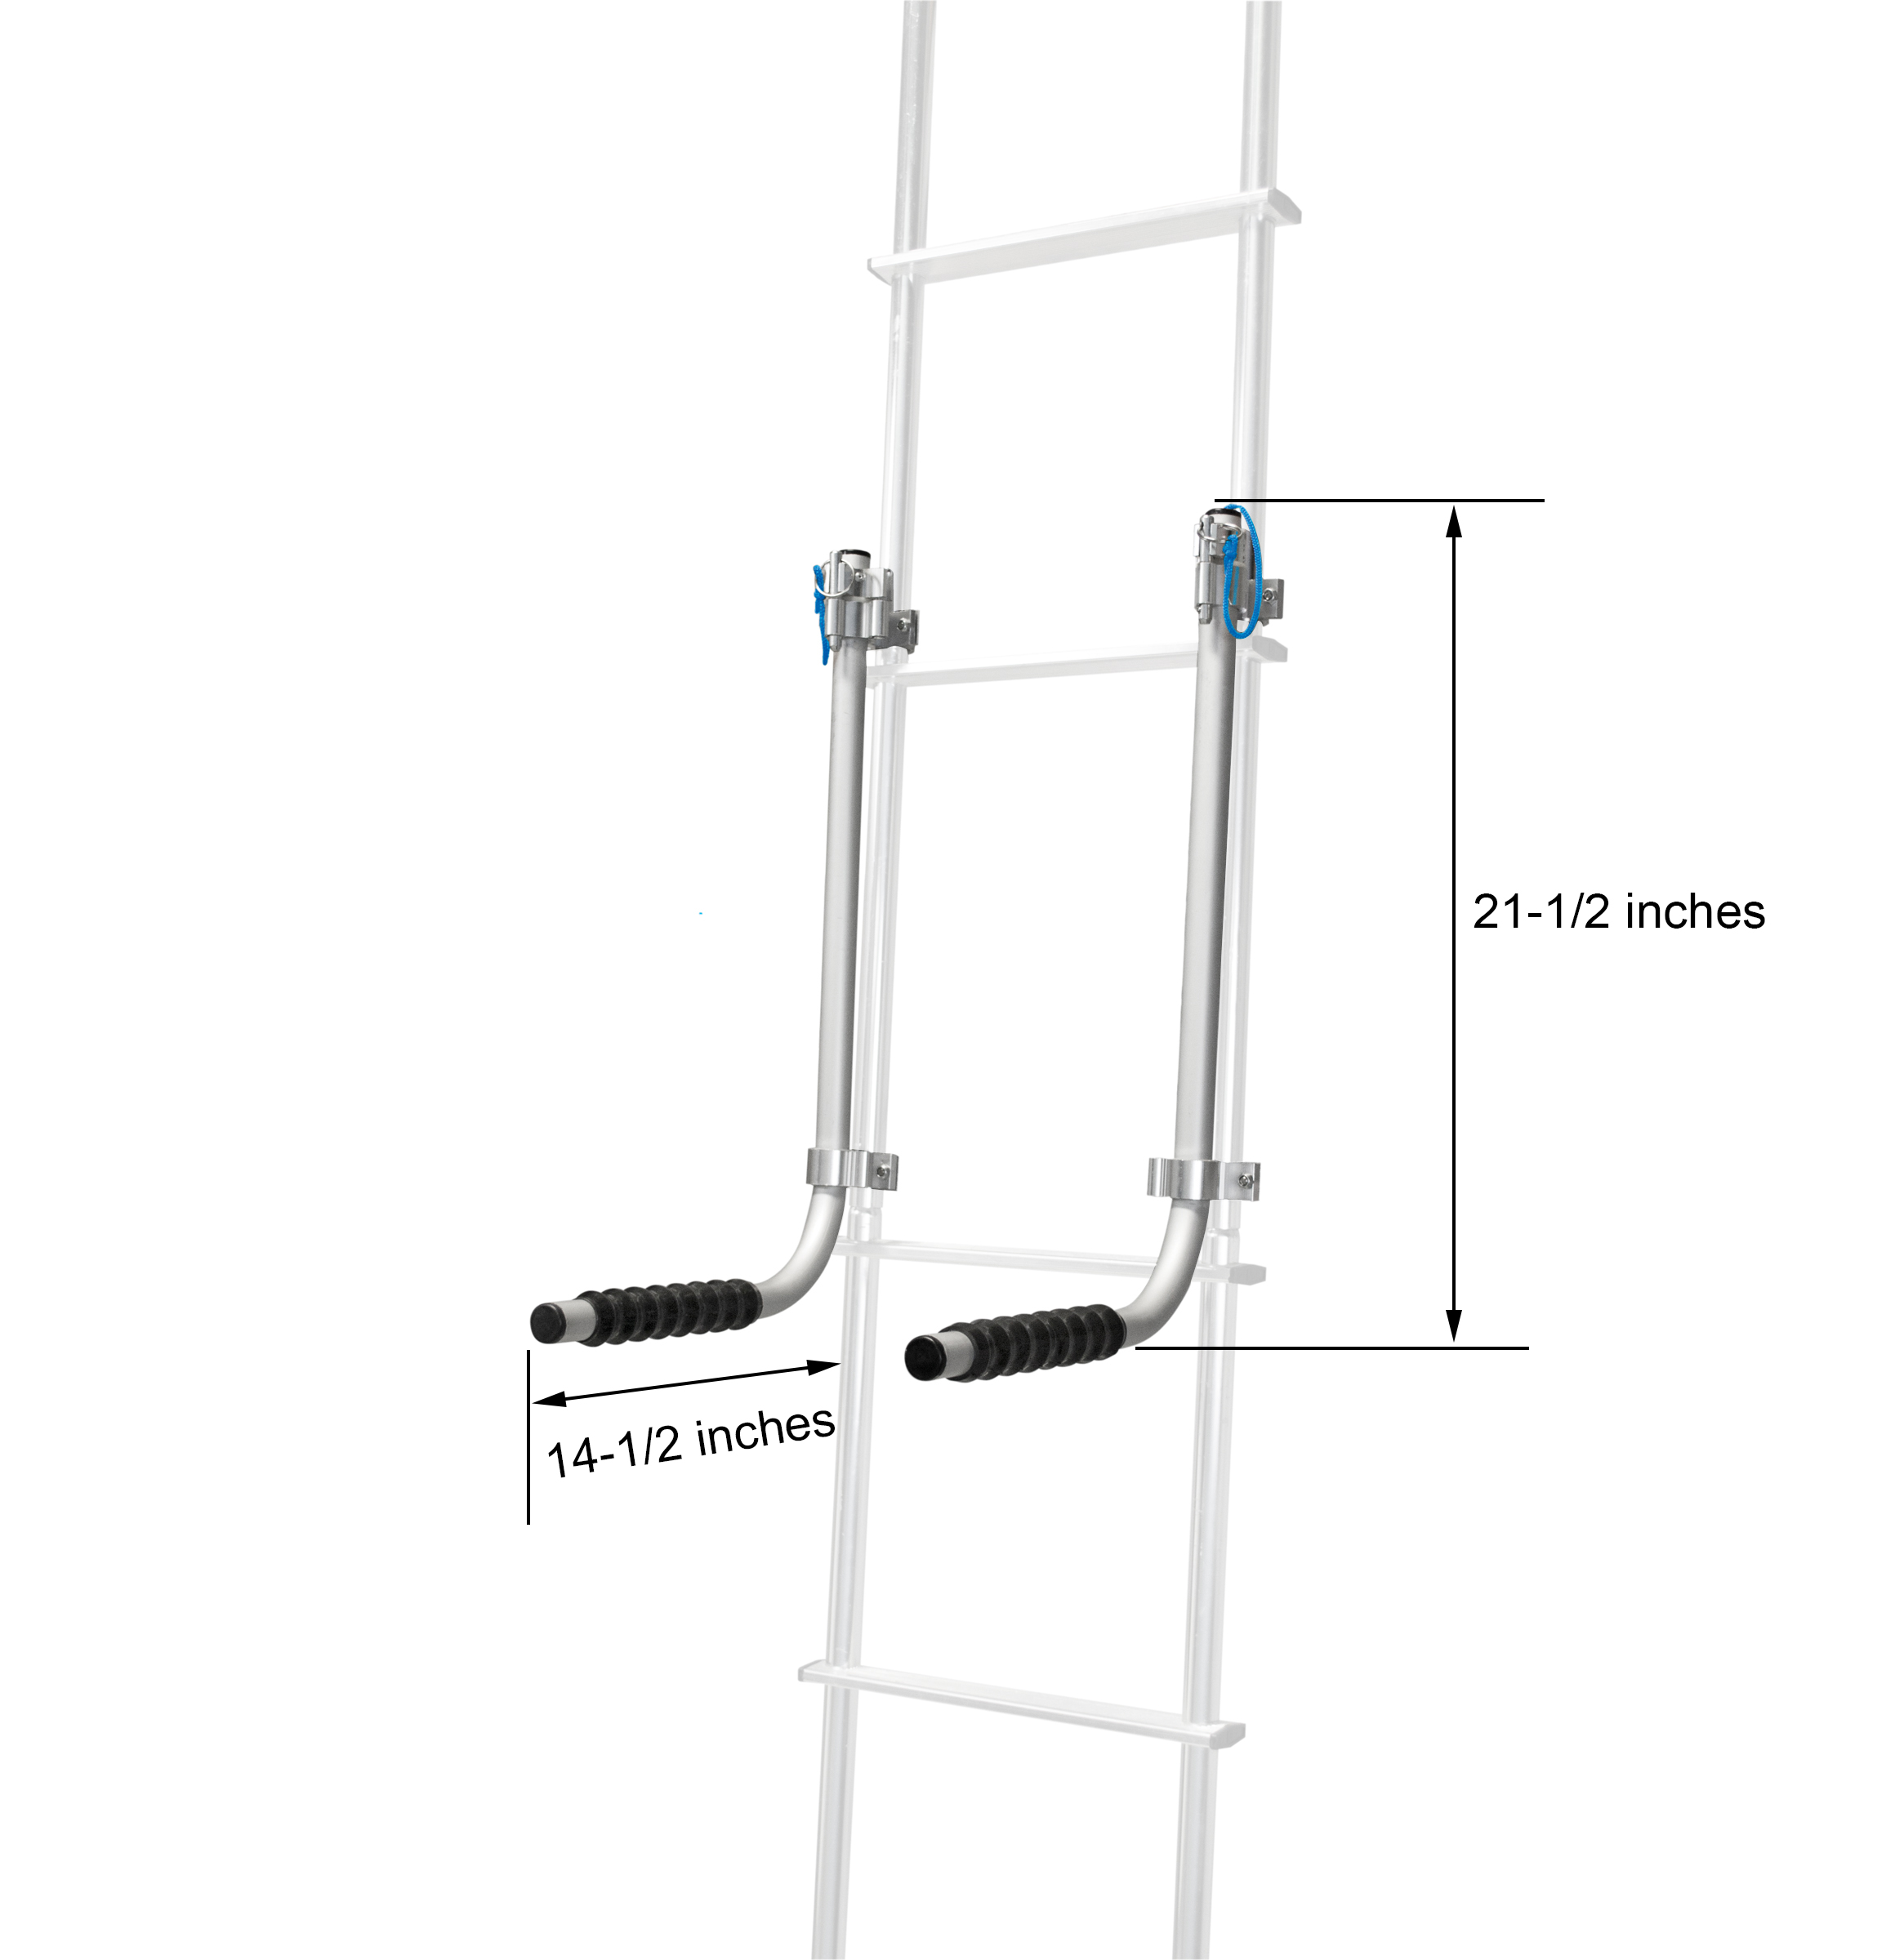 Tote Storage System Ladder Mount Rv Ladder Rack Thetford